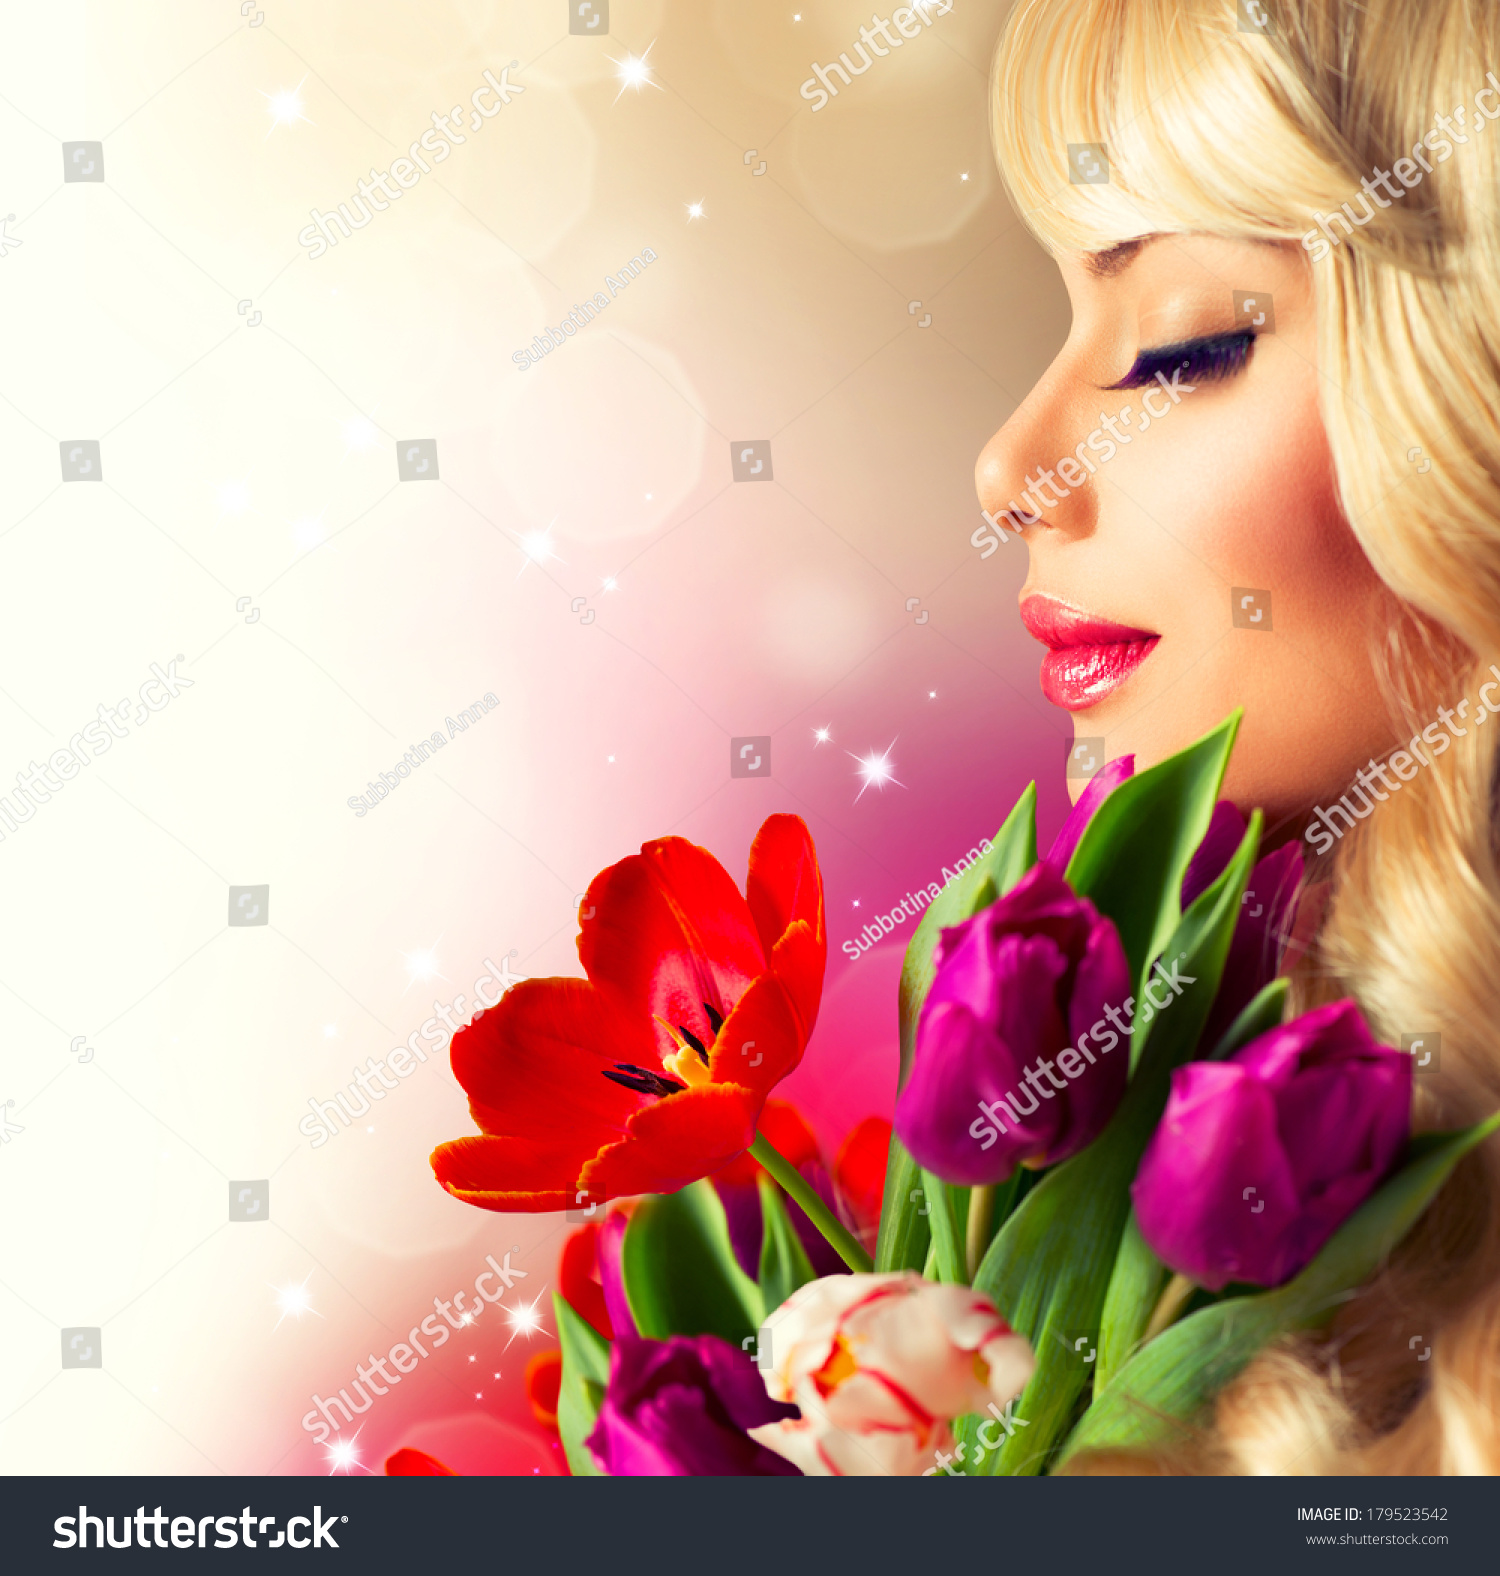 Tulip Girl Name Stock Photo Beauty Woman With Spring Flower Bouquet